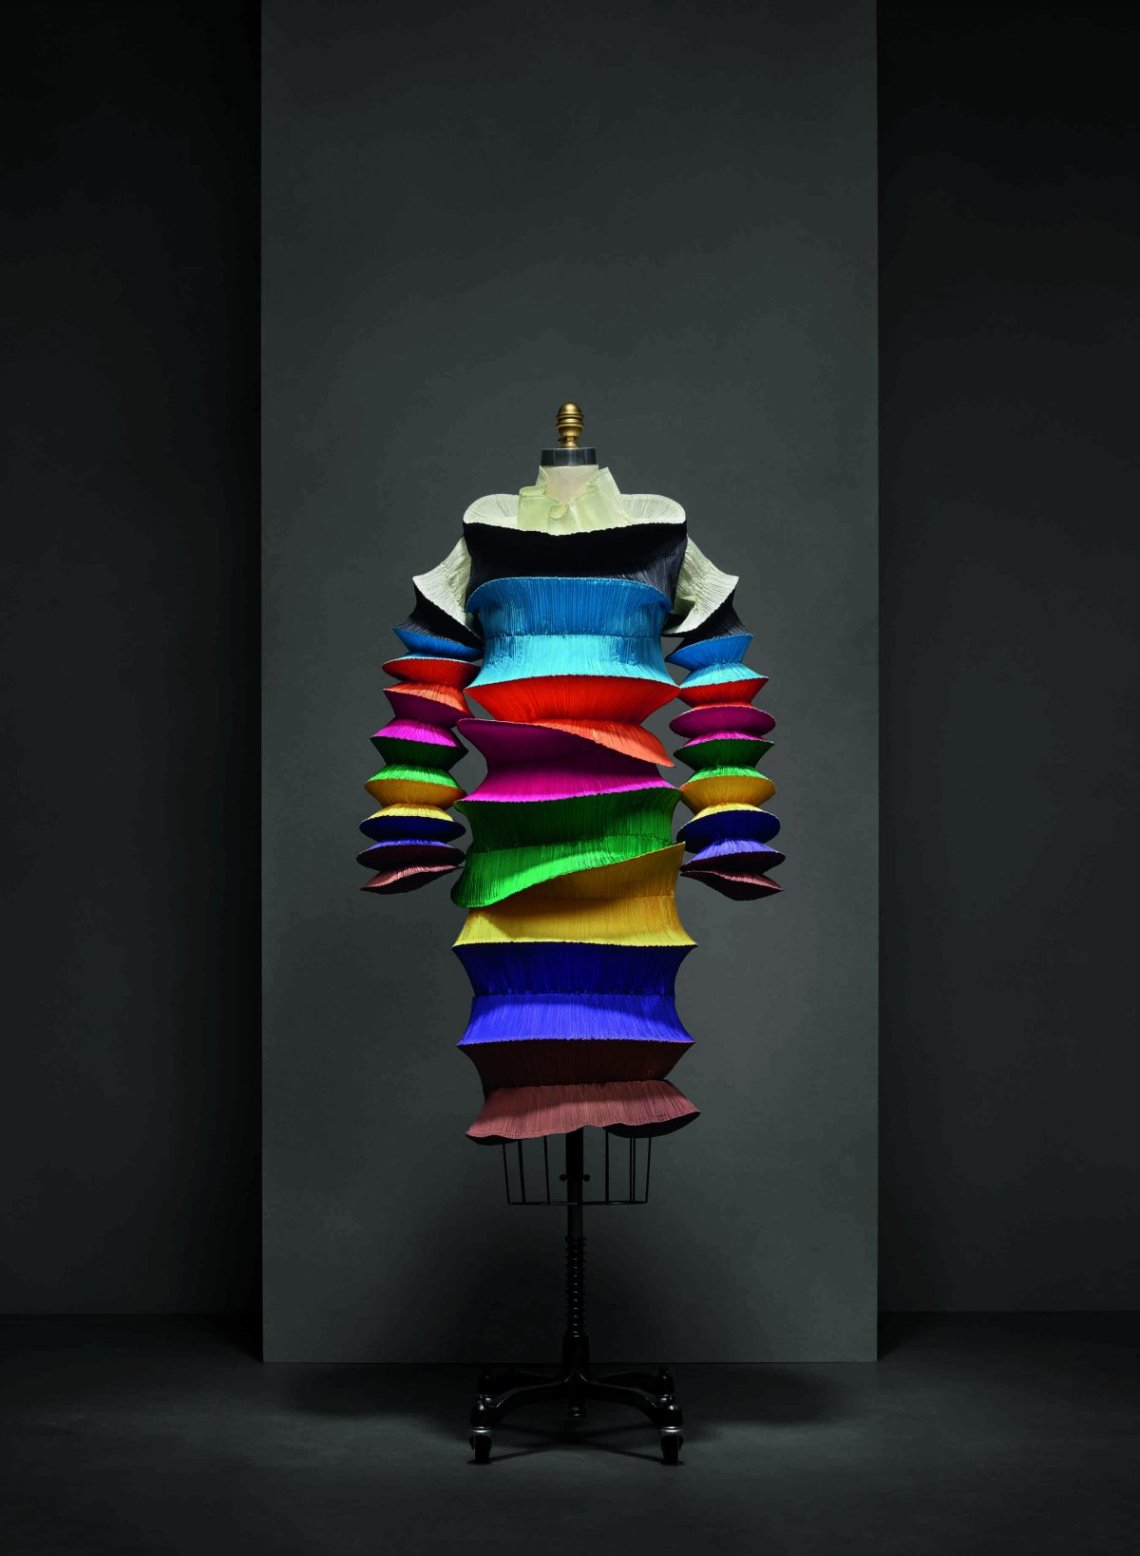 the-flying-saucer-dress-by-issey-miyake-was-pleated-using-a-heated-press-and-can-collapse-into-its-original-circular-shape-with-ease